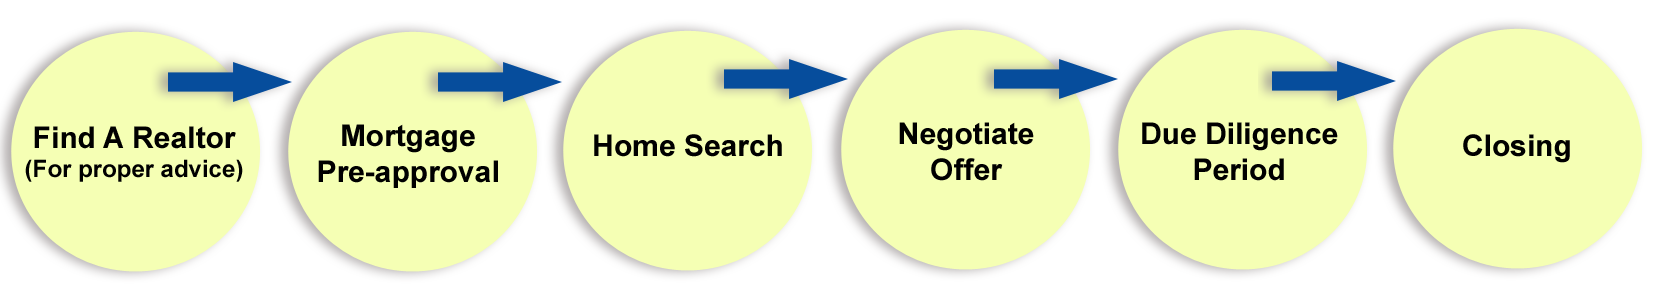 real estate purchase process